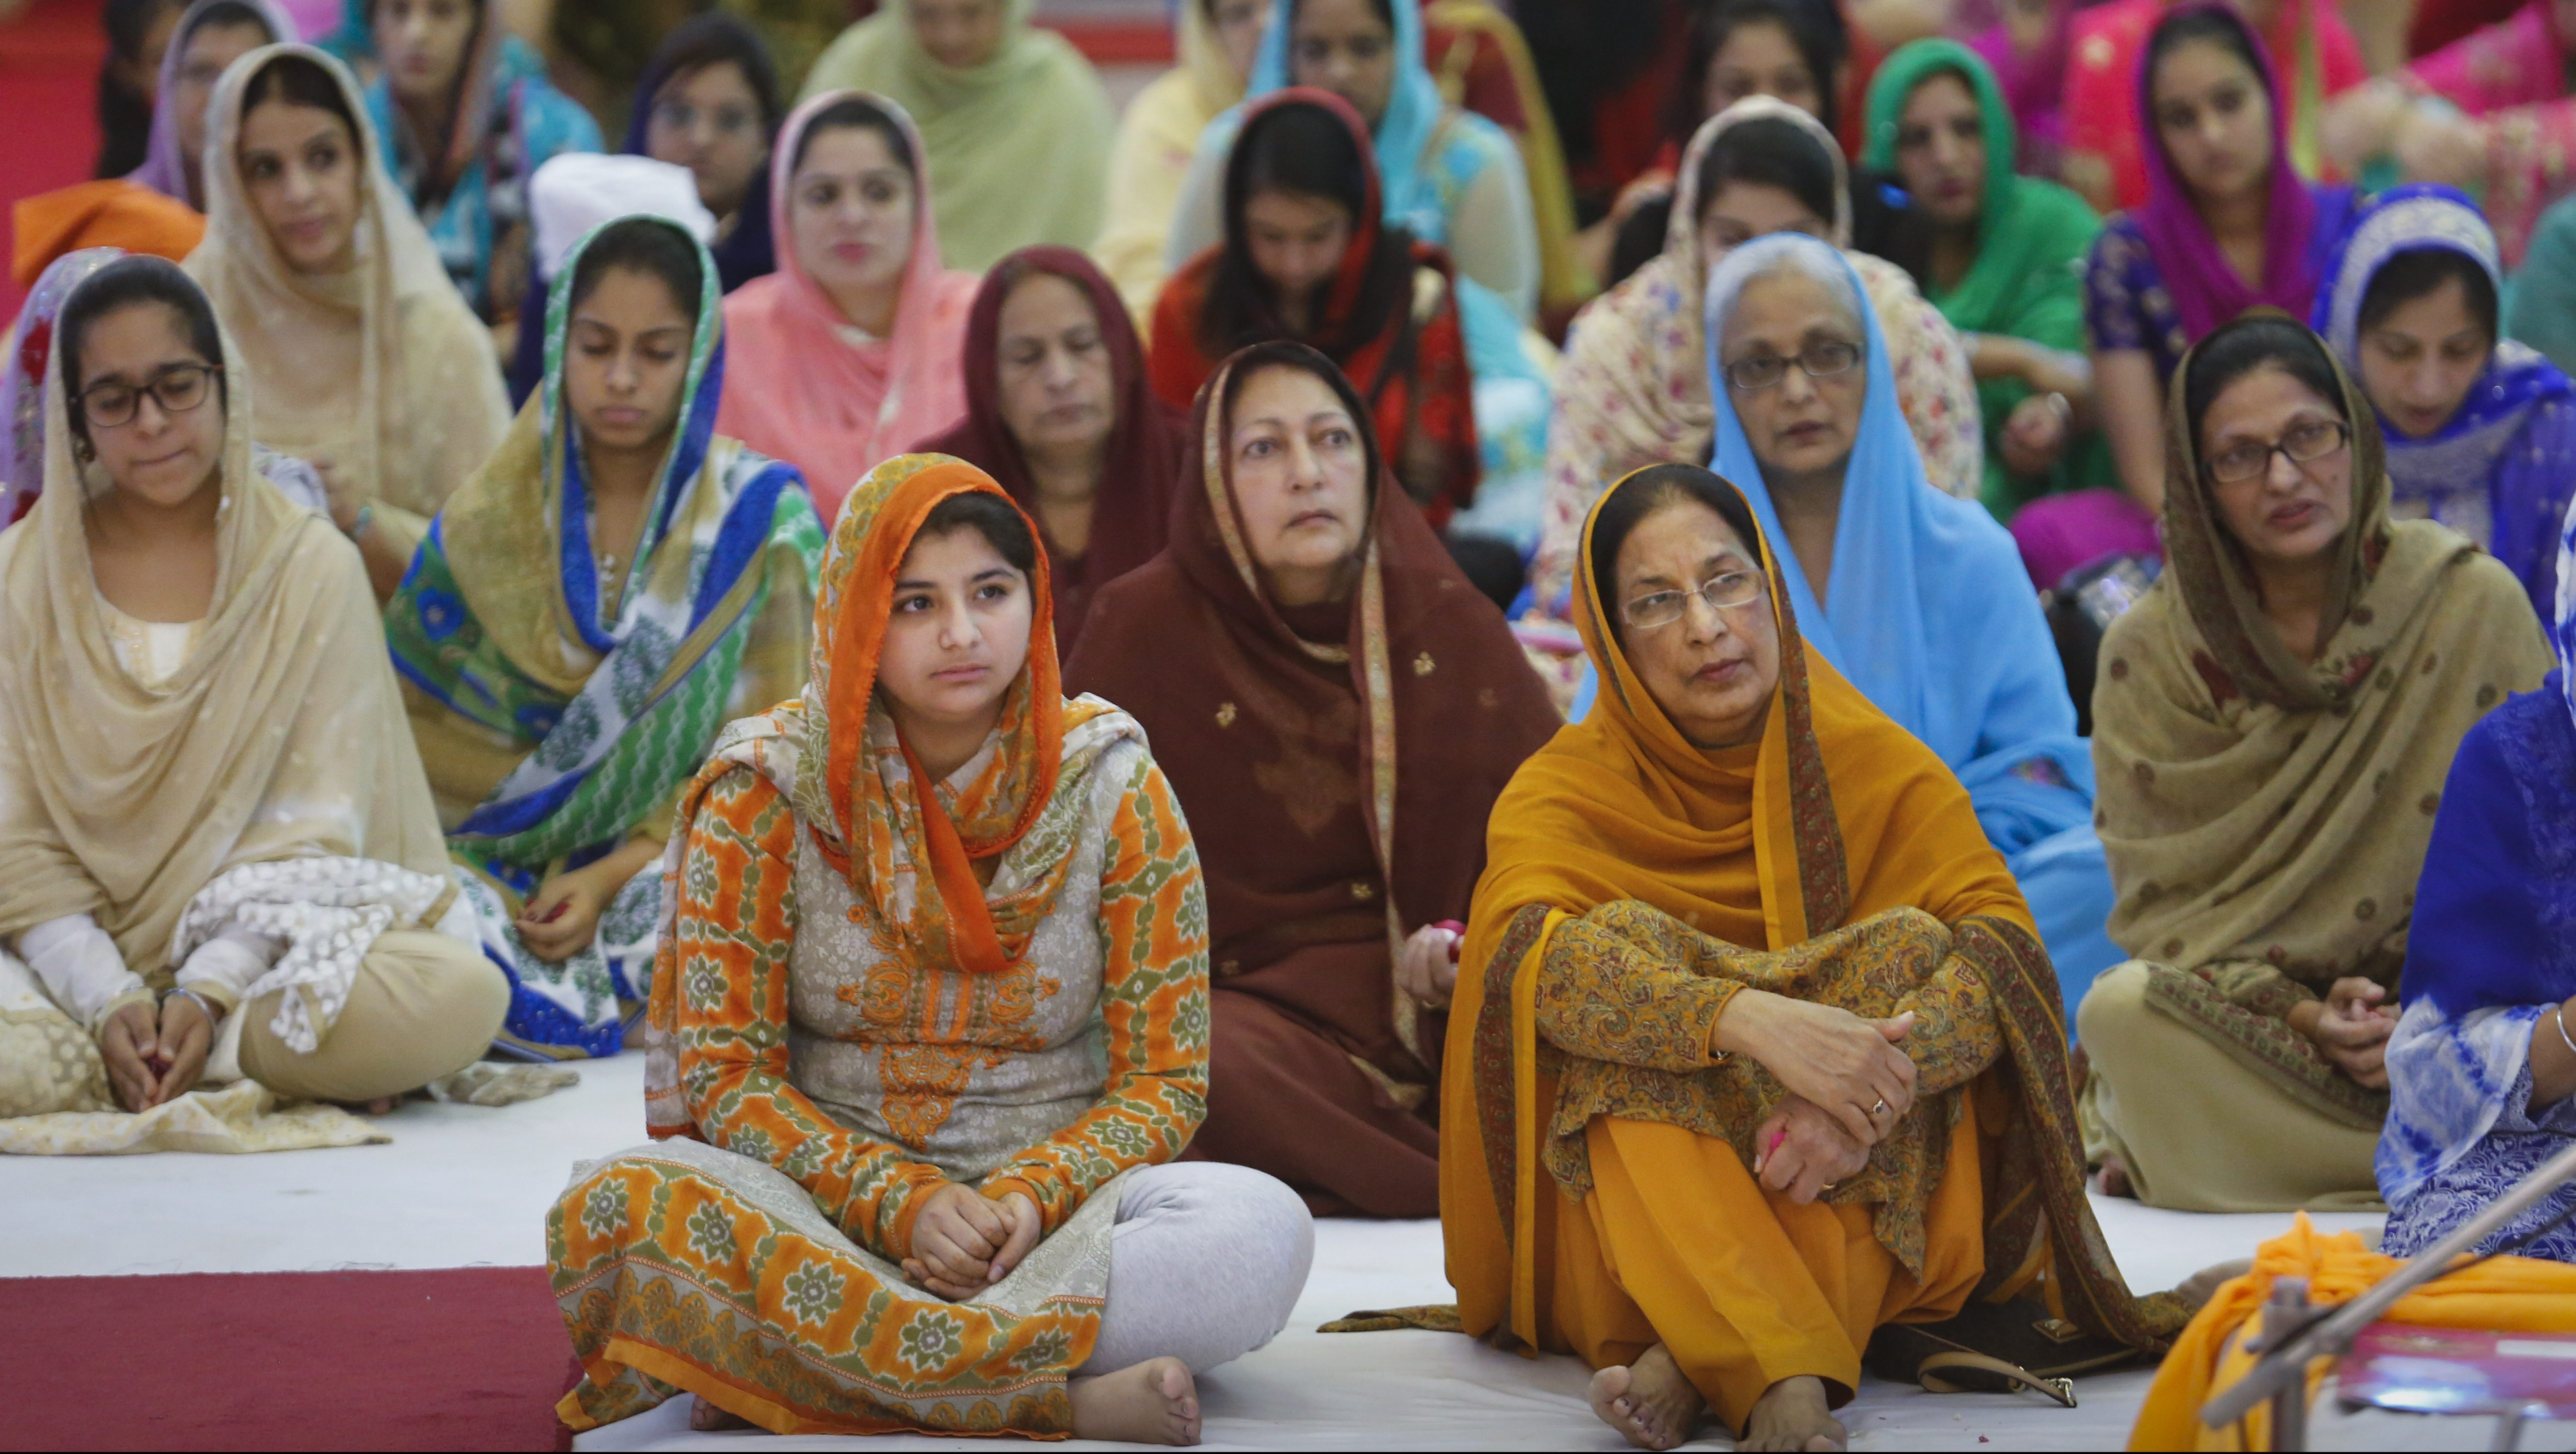 Sikh women pray as they attend the 547th birth anniversary of the first Sikh Guru or master, Sri Guru Nanak Dev Ji, the founder of Sikhism in Nairobi, Kenya, 14 November 2016. Sikhs in the East African nation are joining the fellow faithfuls in India to celebrate the birth of the first Sikh Guru.